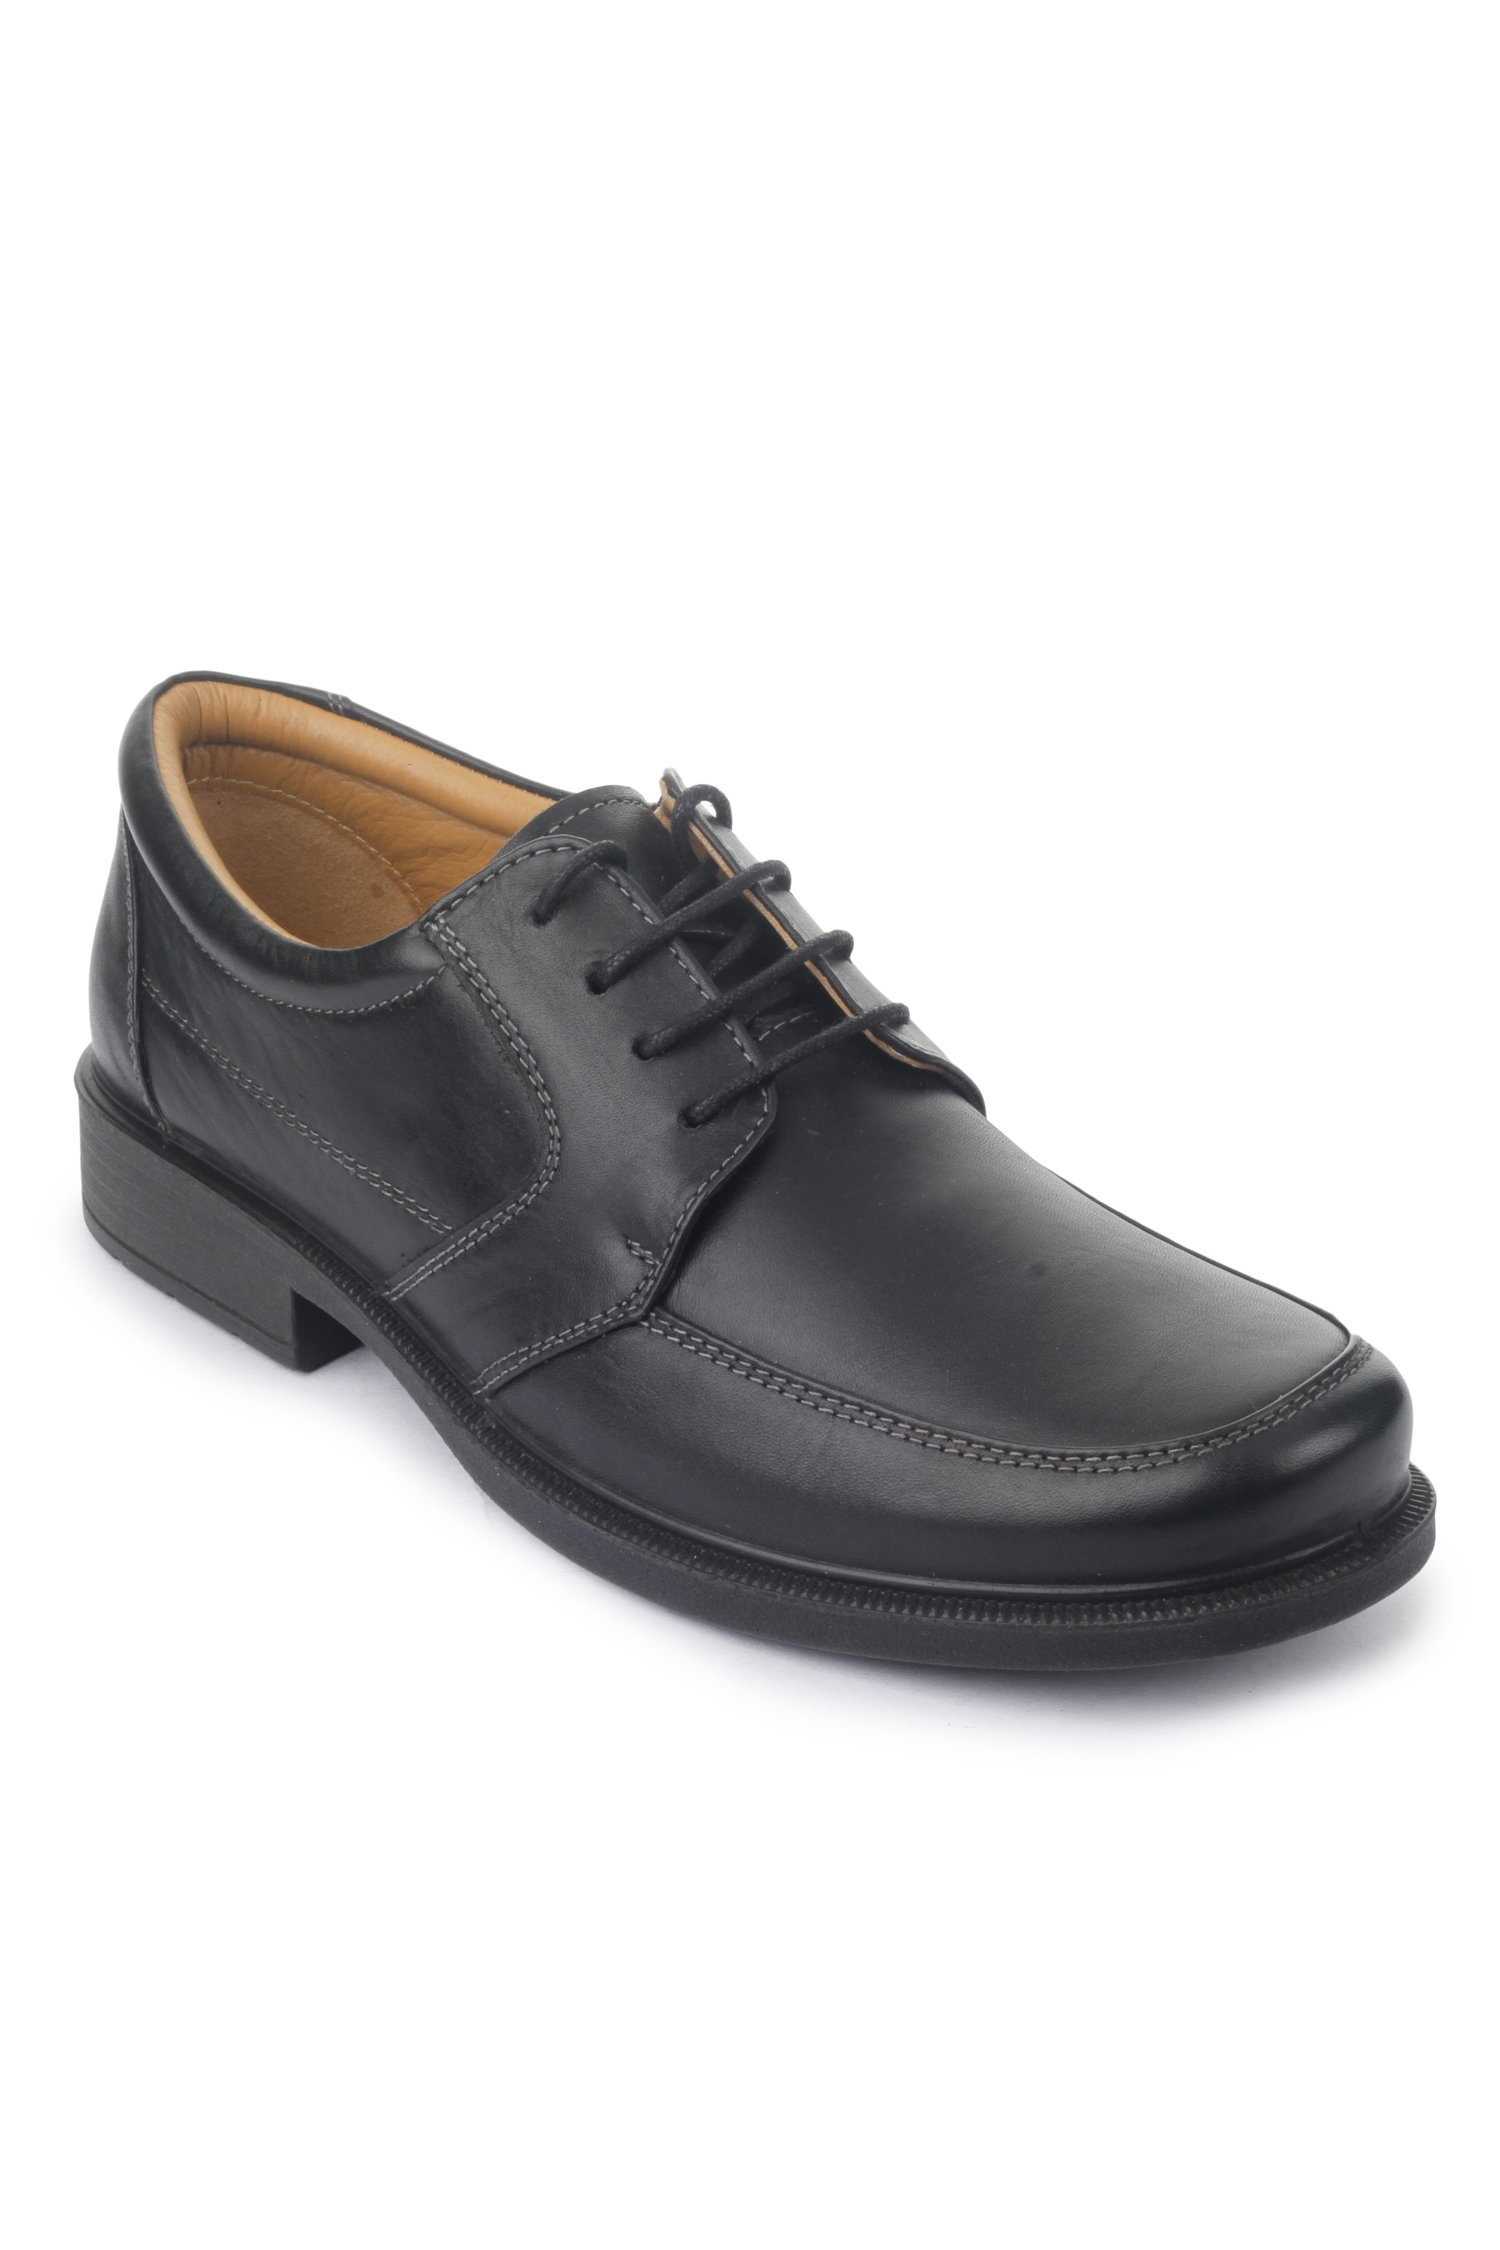 Liberty Mens Classic Round Toe Leather Lined Slip On Dress Laceup Shoes, Black, 8.5 D(M) US by Liberty Footwear